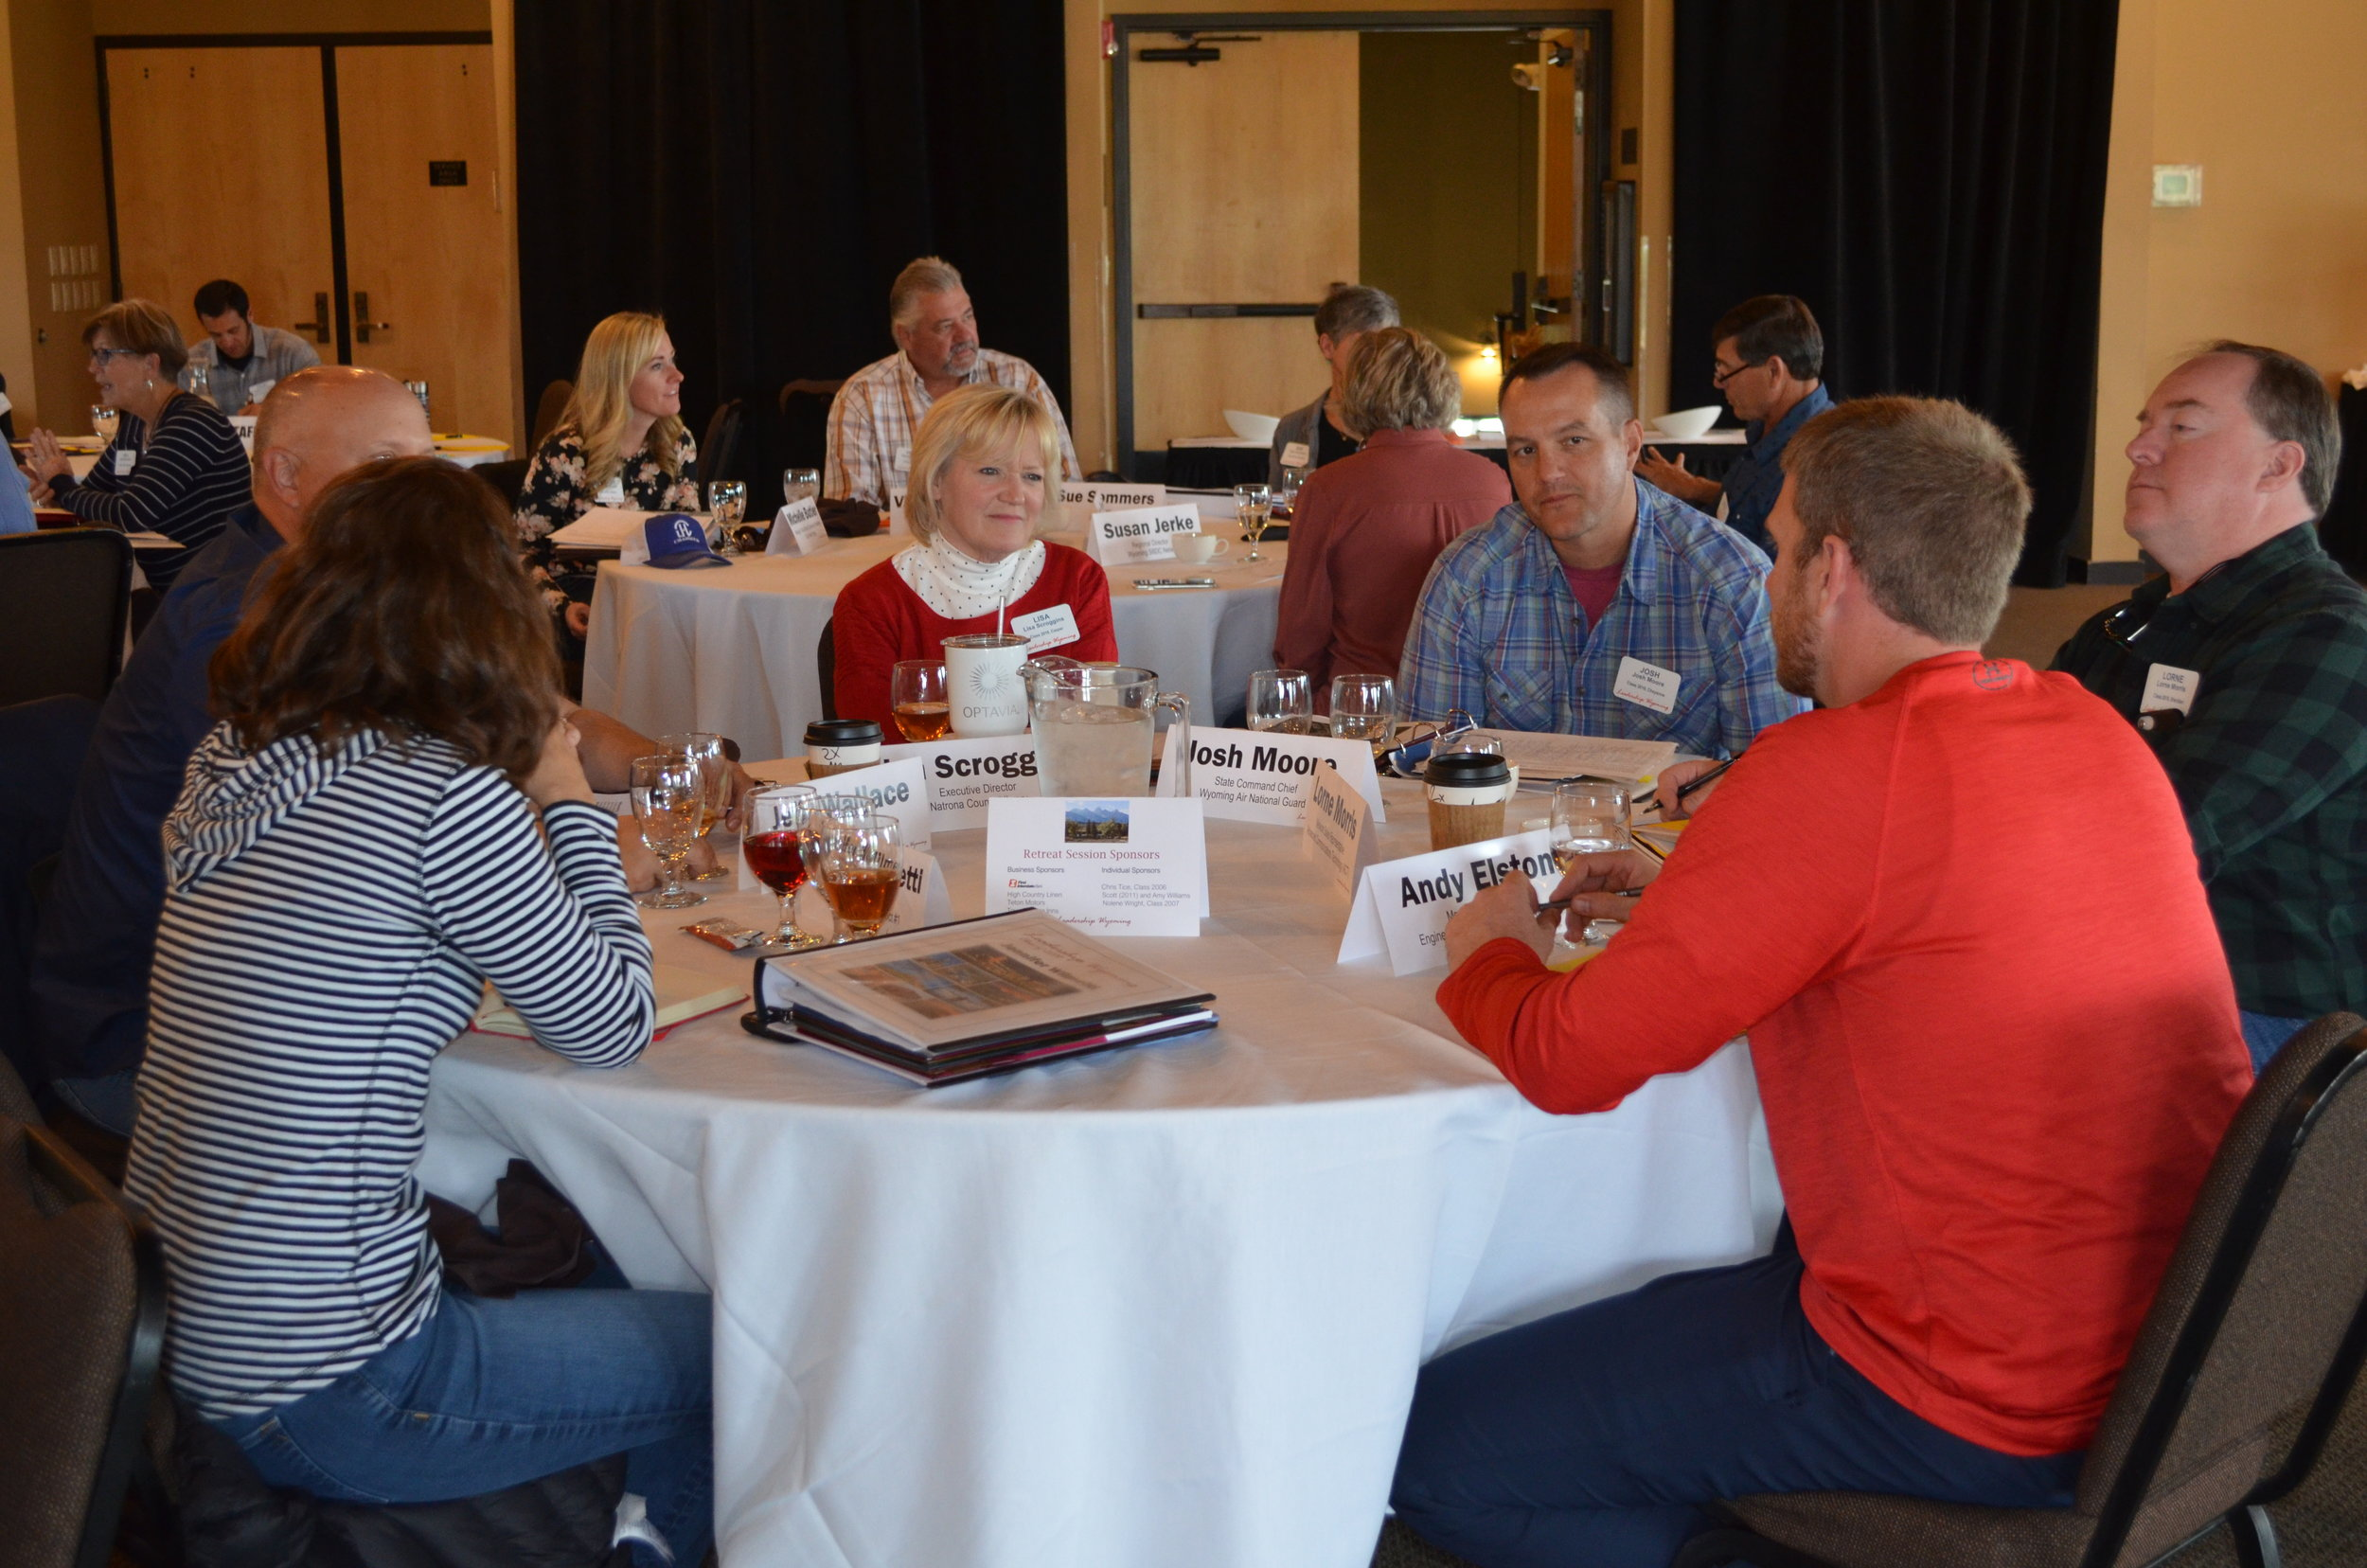 Leadership Wyoming is a nine-month cohort experience designed to help Wyoming leaders understand the state and grow in their capacity as leaders. Each year between 45-50 leaders are selected for the experience that begins in August and is completed in May.